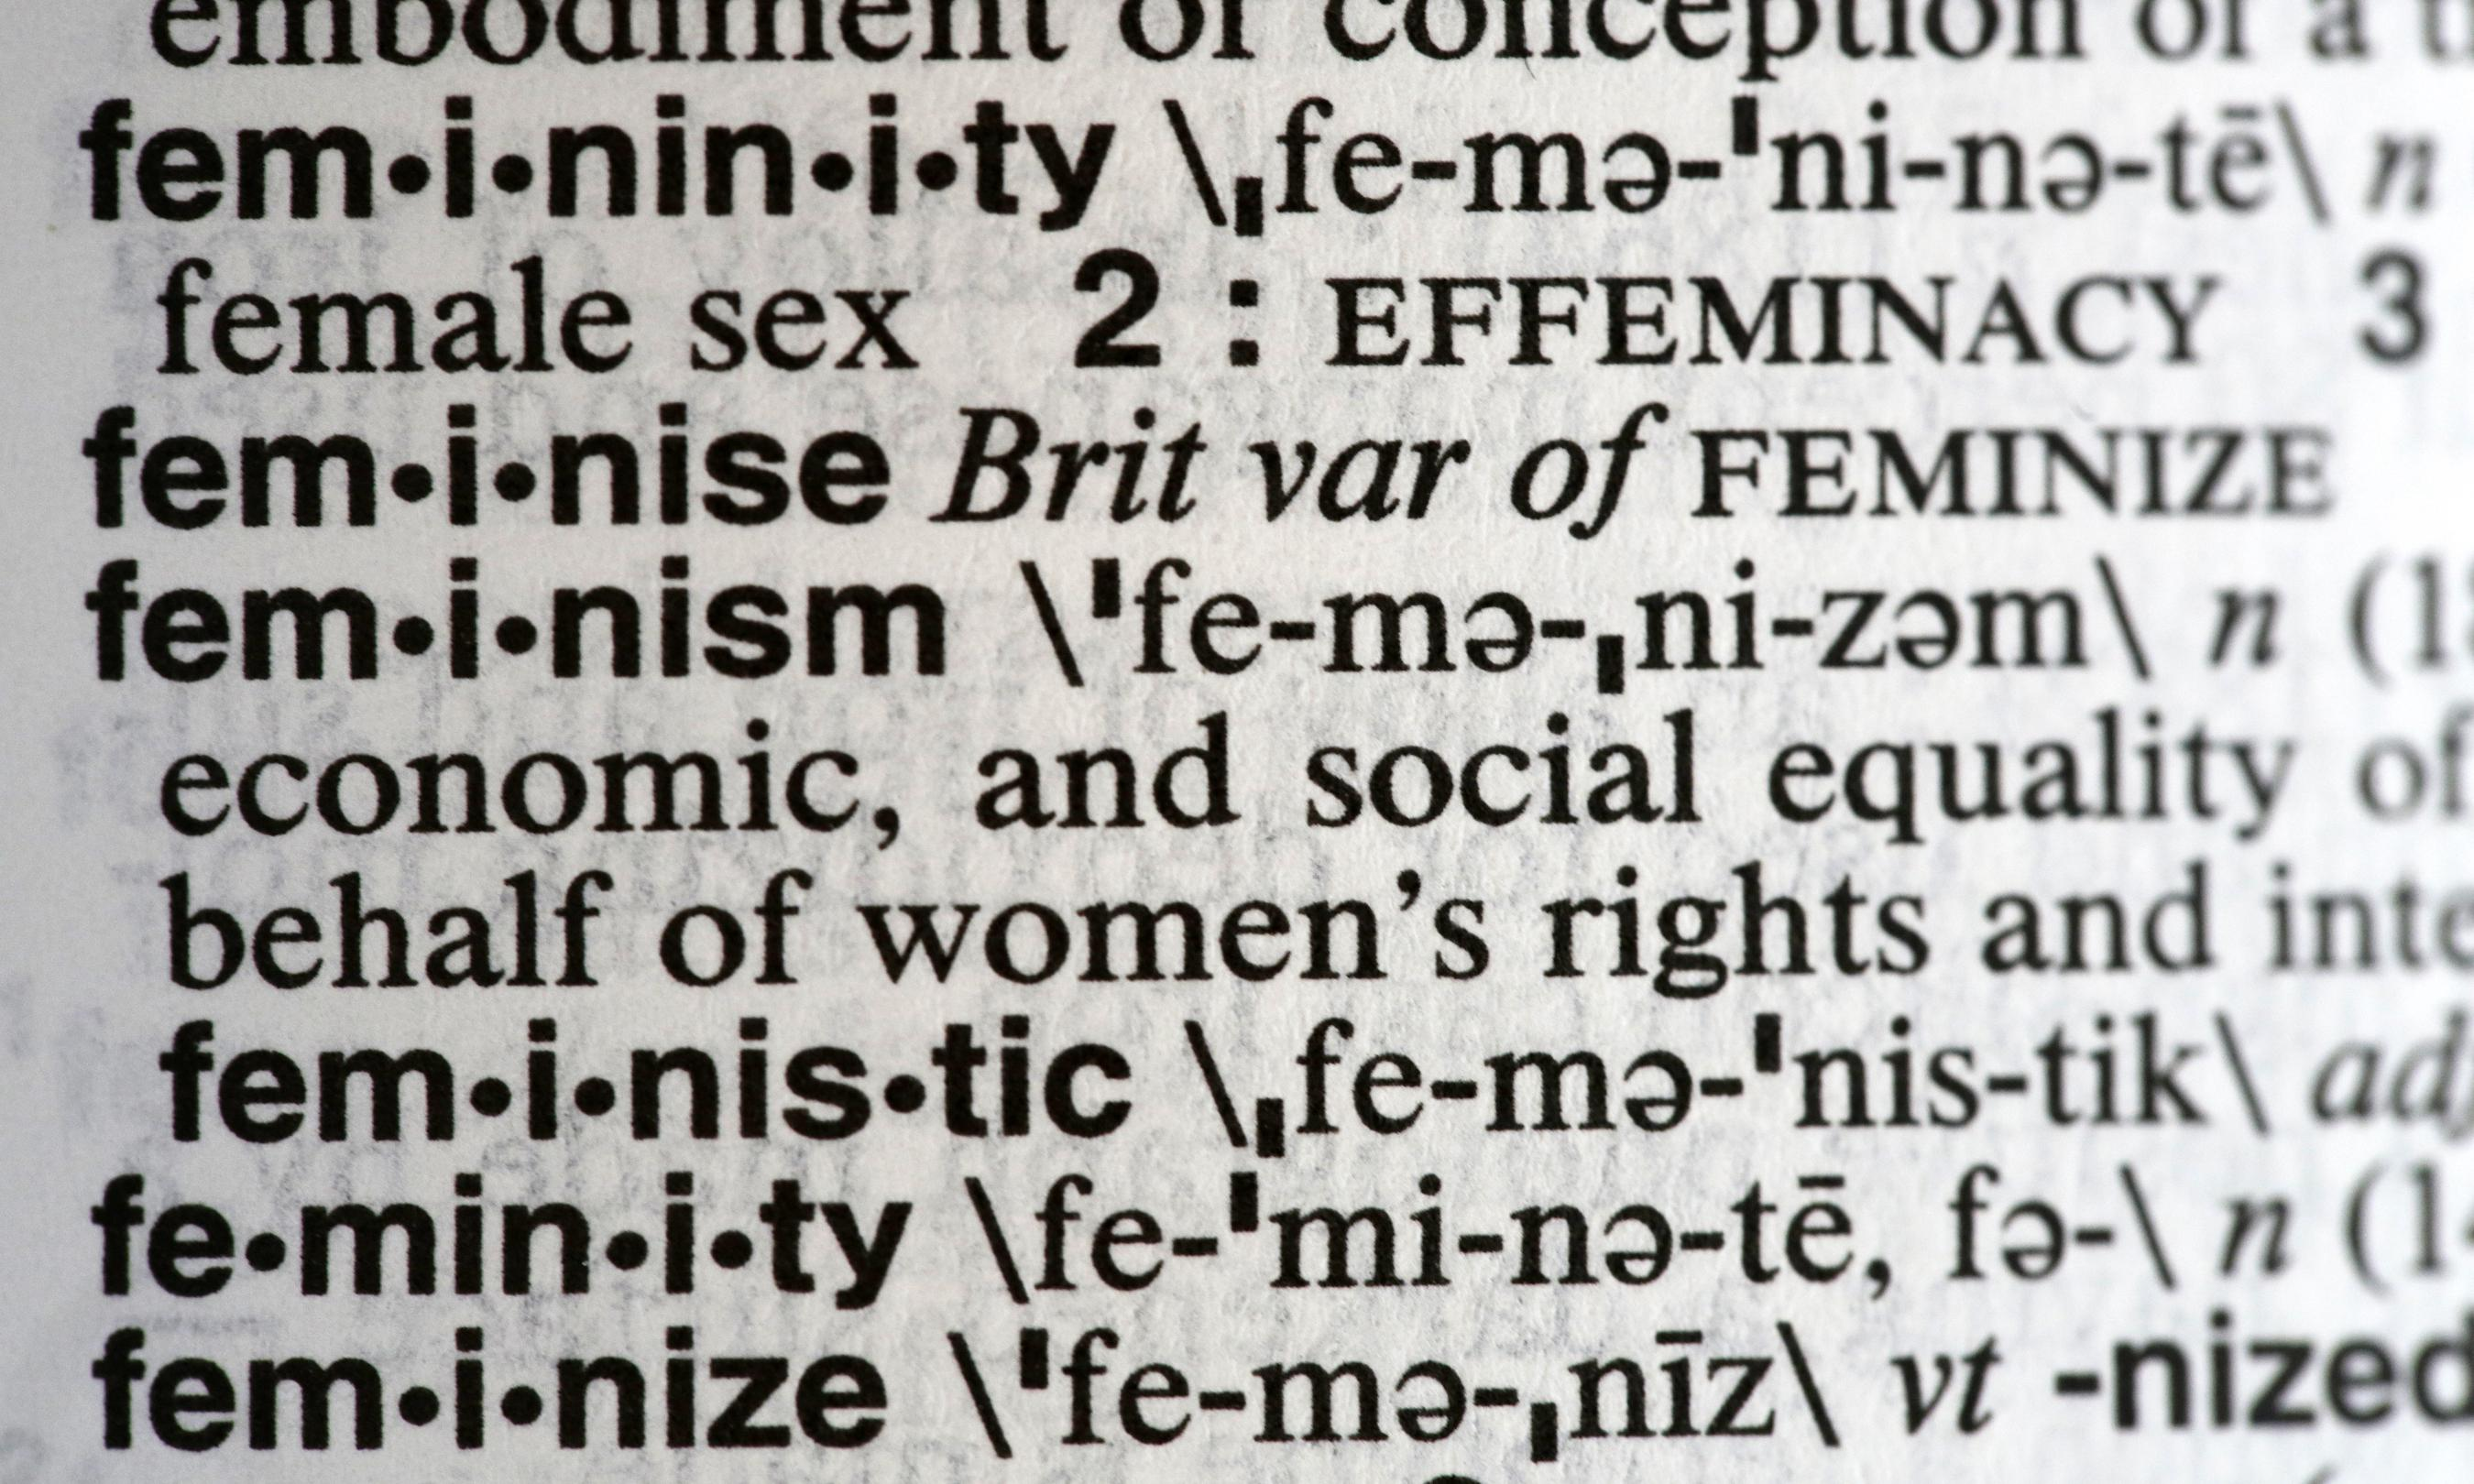 Thousands demand Oxford dictionaries 'eliminate sexist definitions'